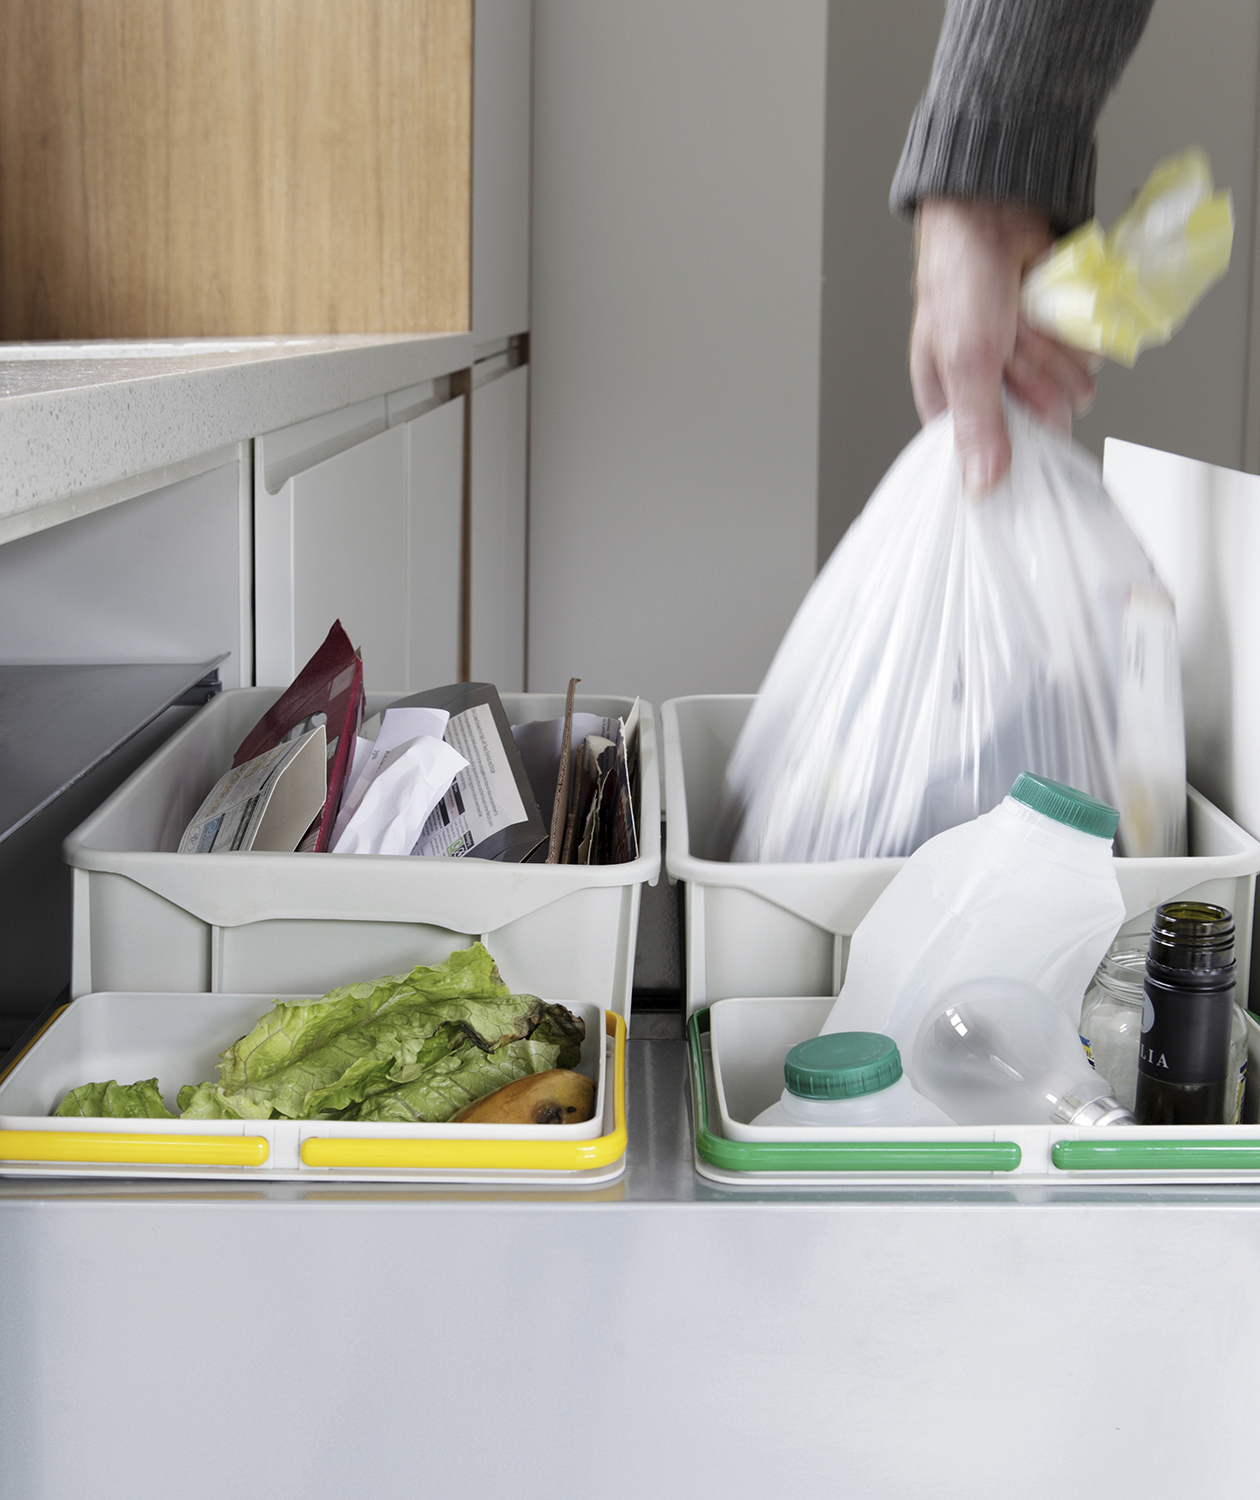 Person removing trash bag from waste and recycling drawer